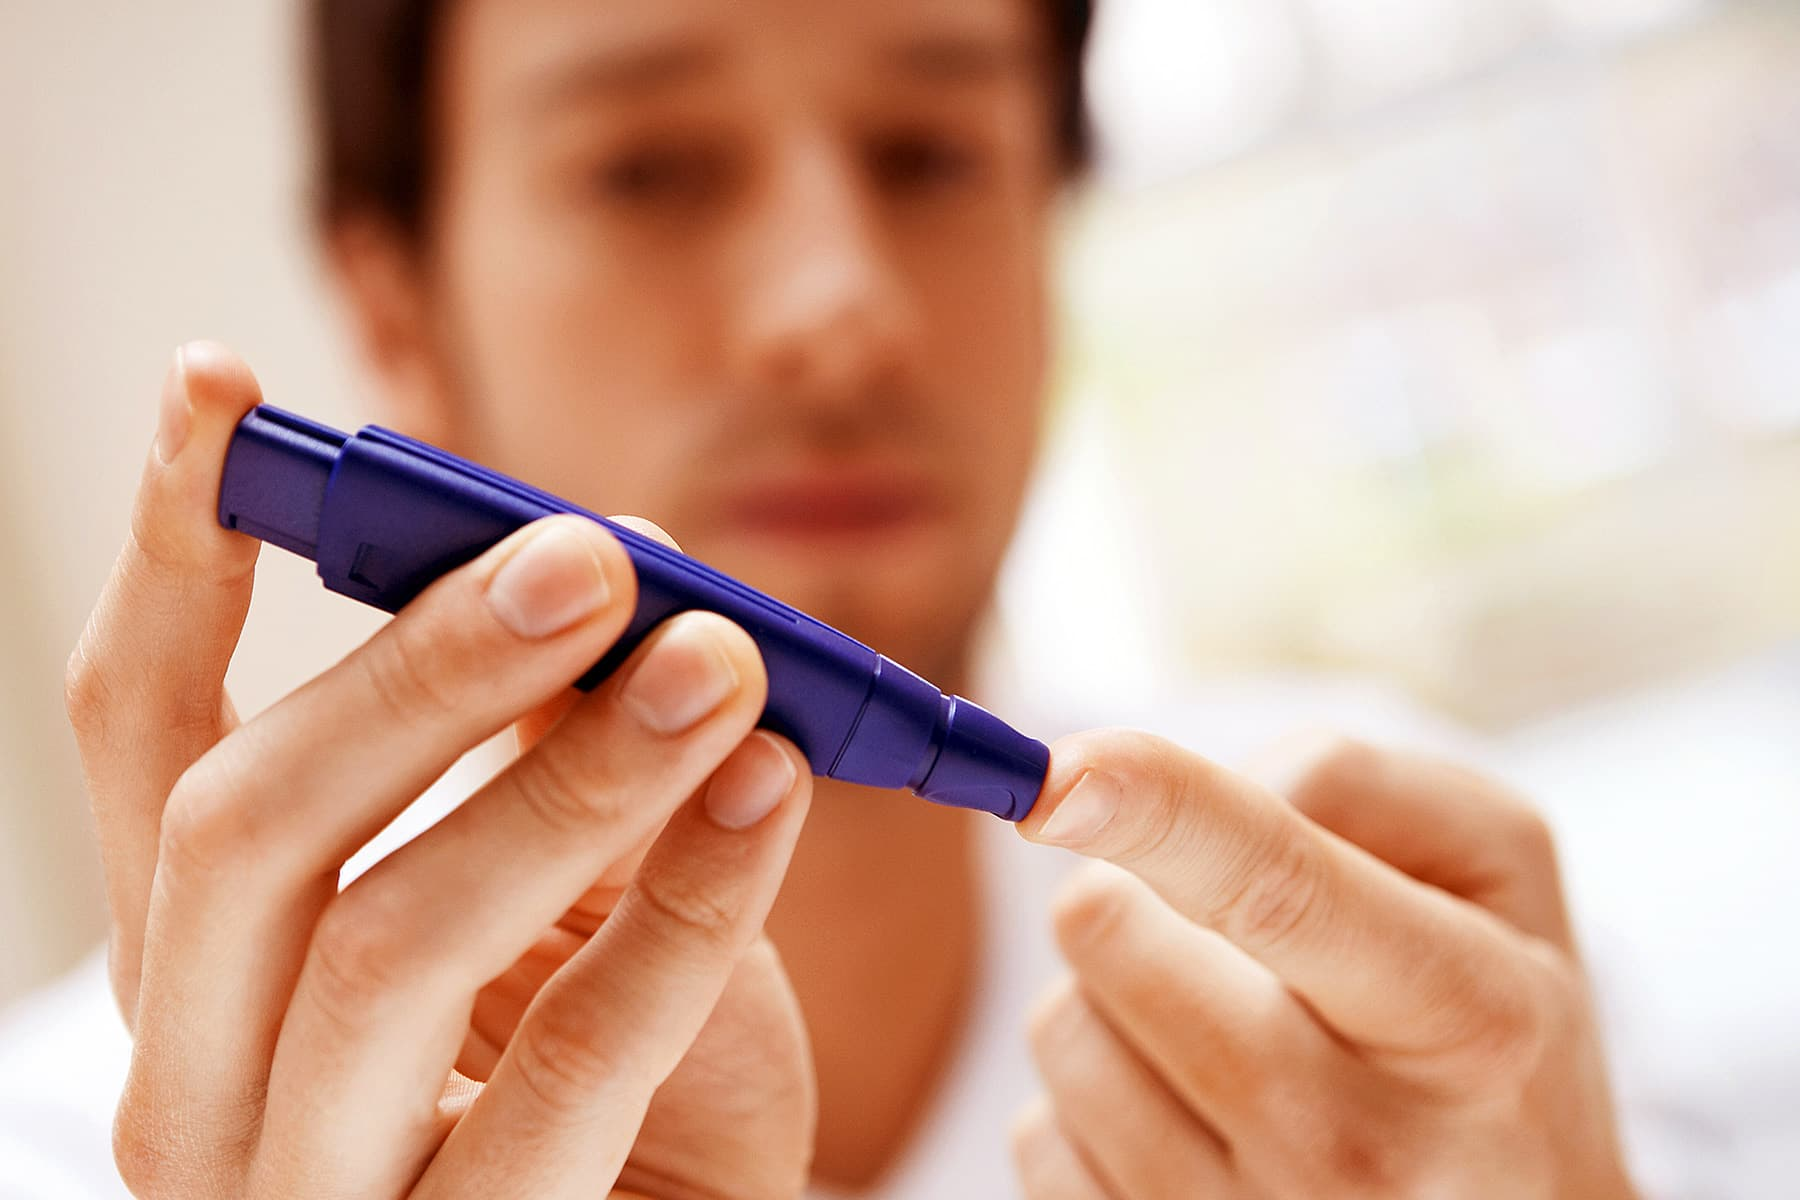 Targeted Blood Sugar Level With Diabetes May Help Prevent a 2nd Stroke